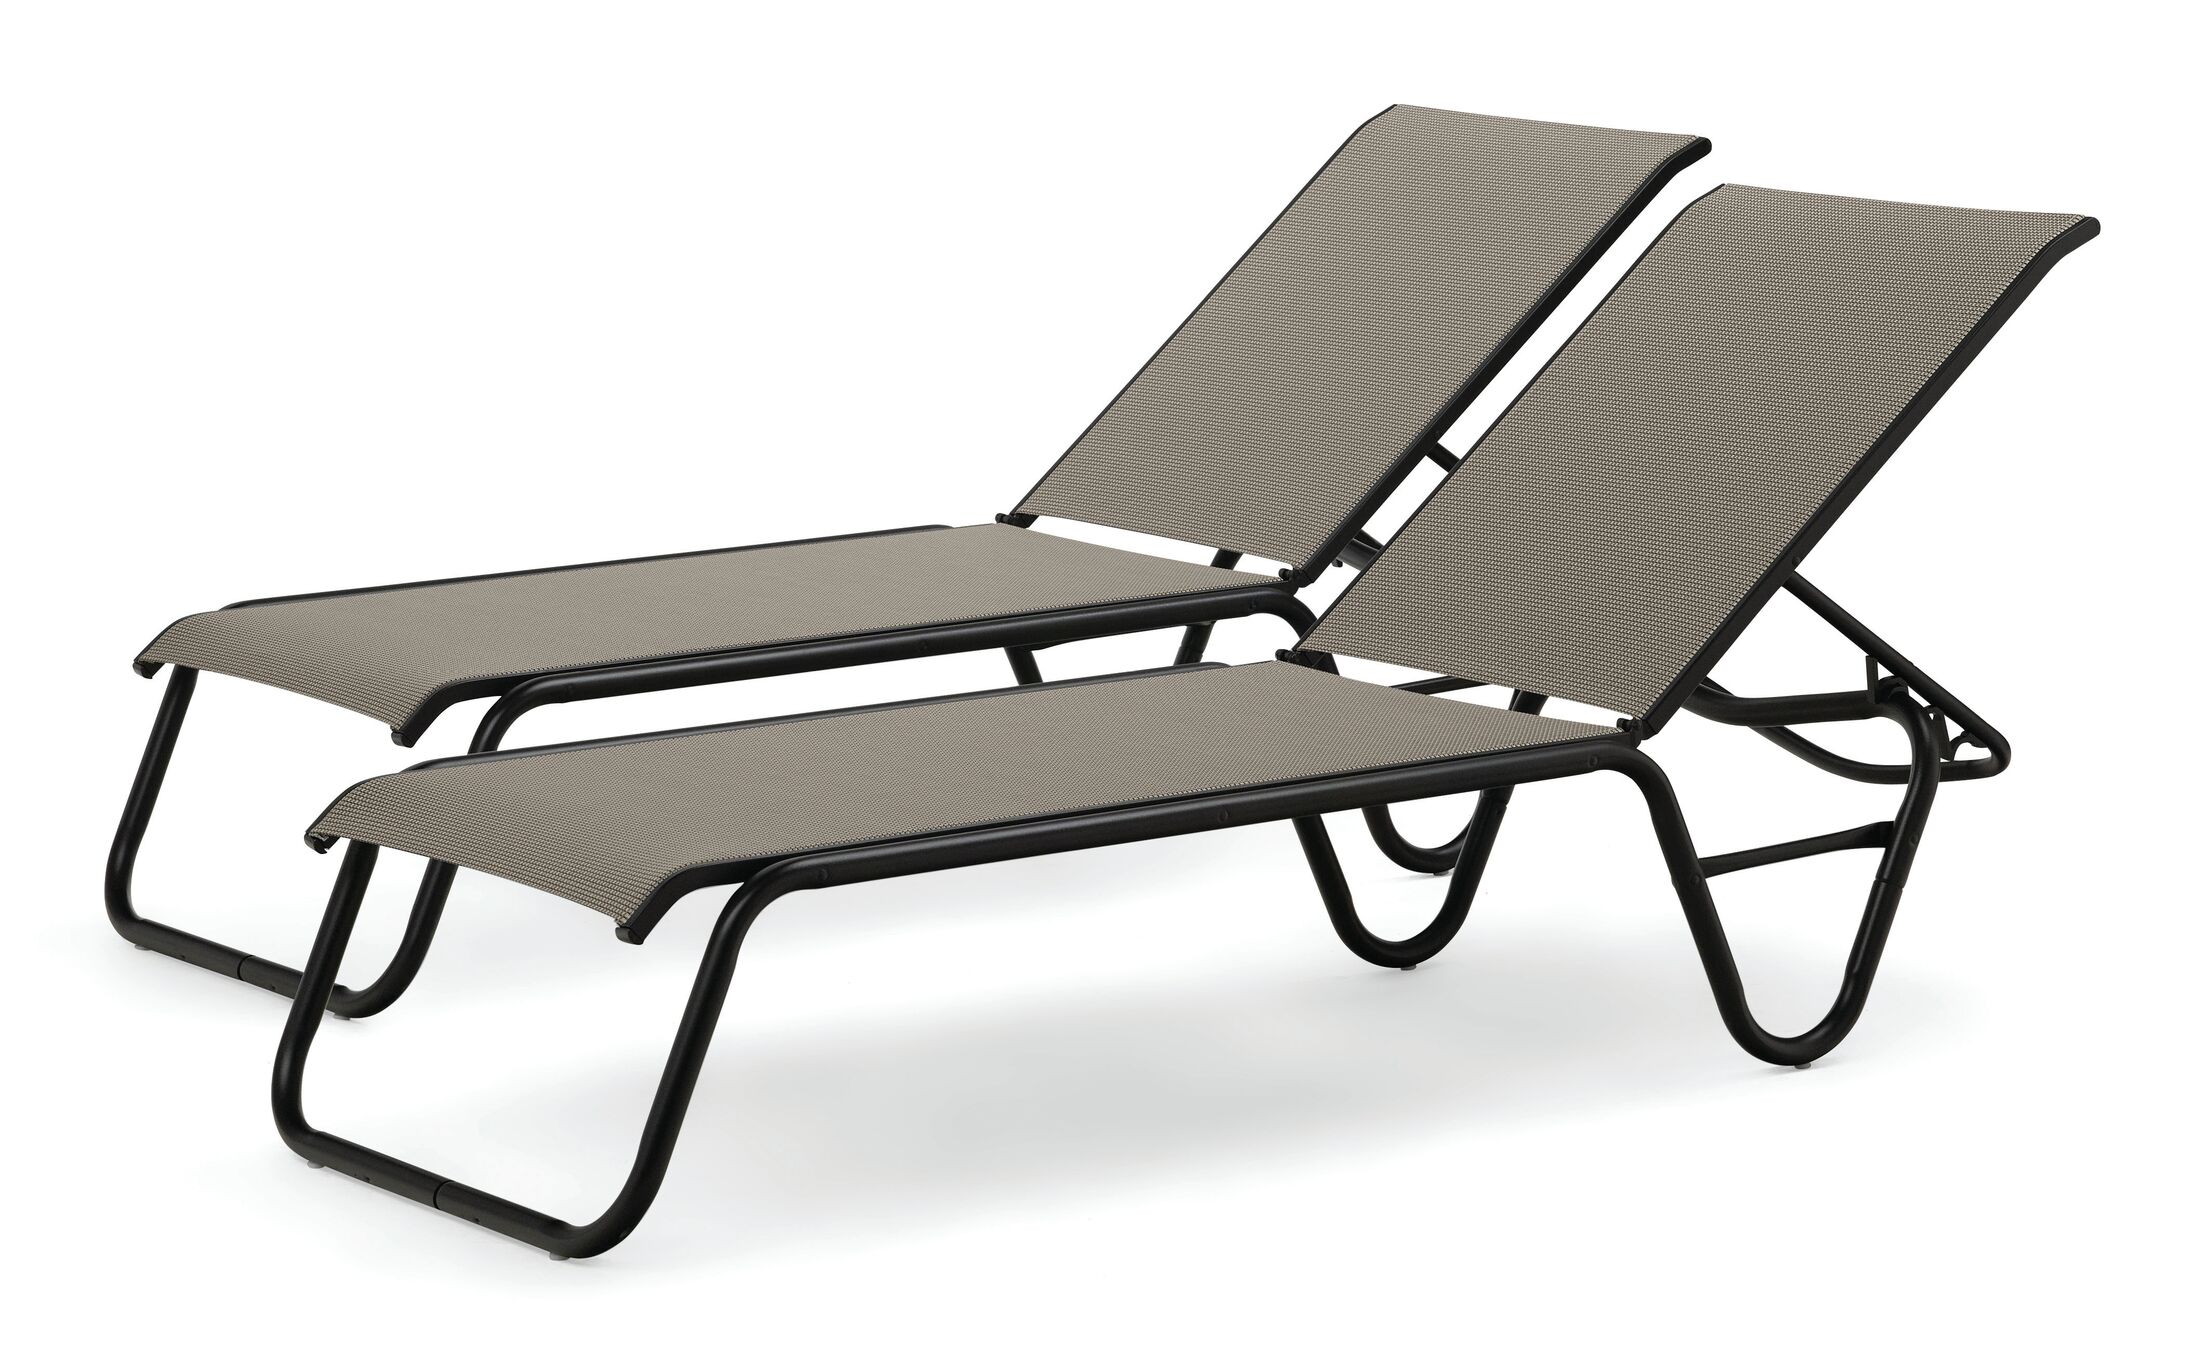 Maust Reclining Chaise Lounge Color: Tweed/Graphite